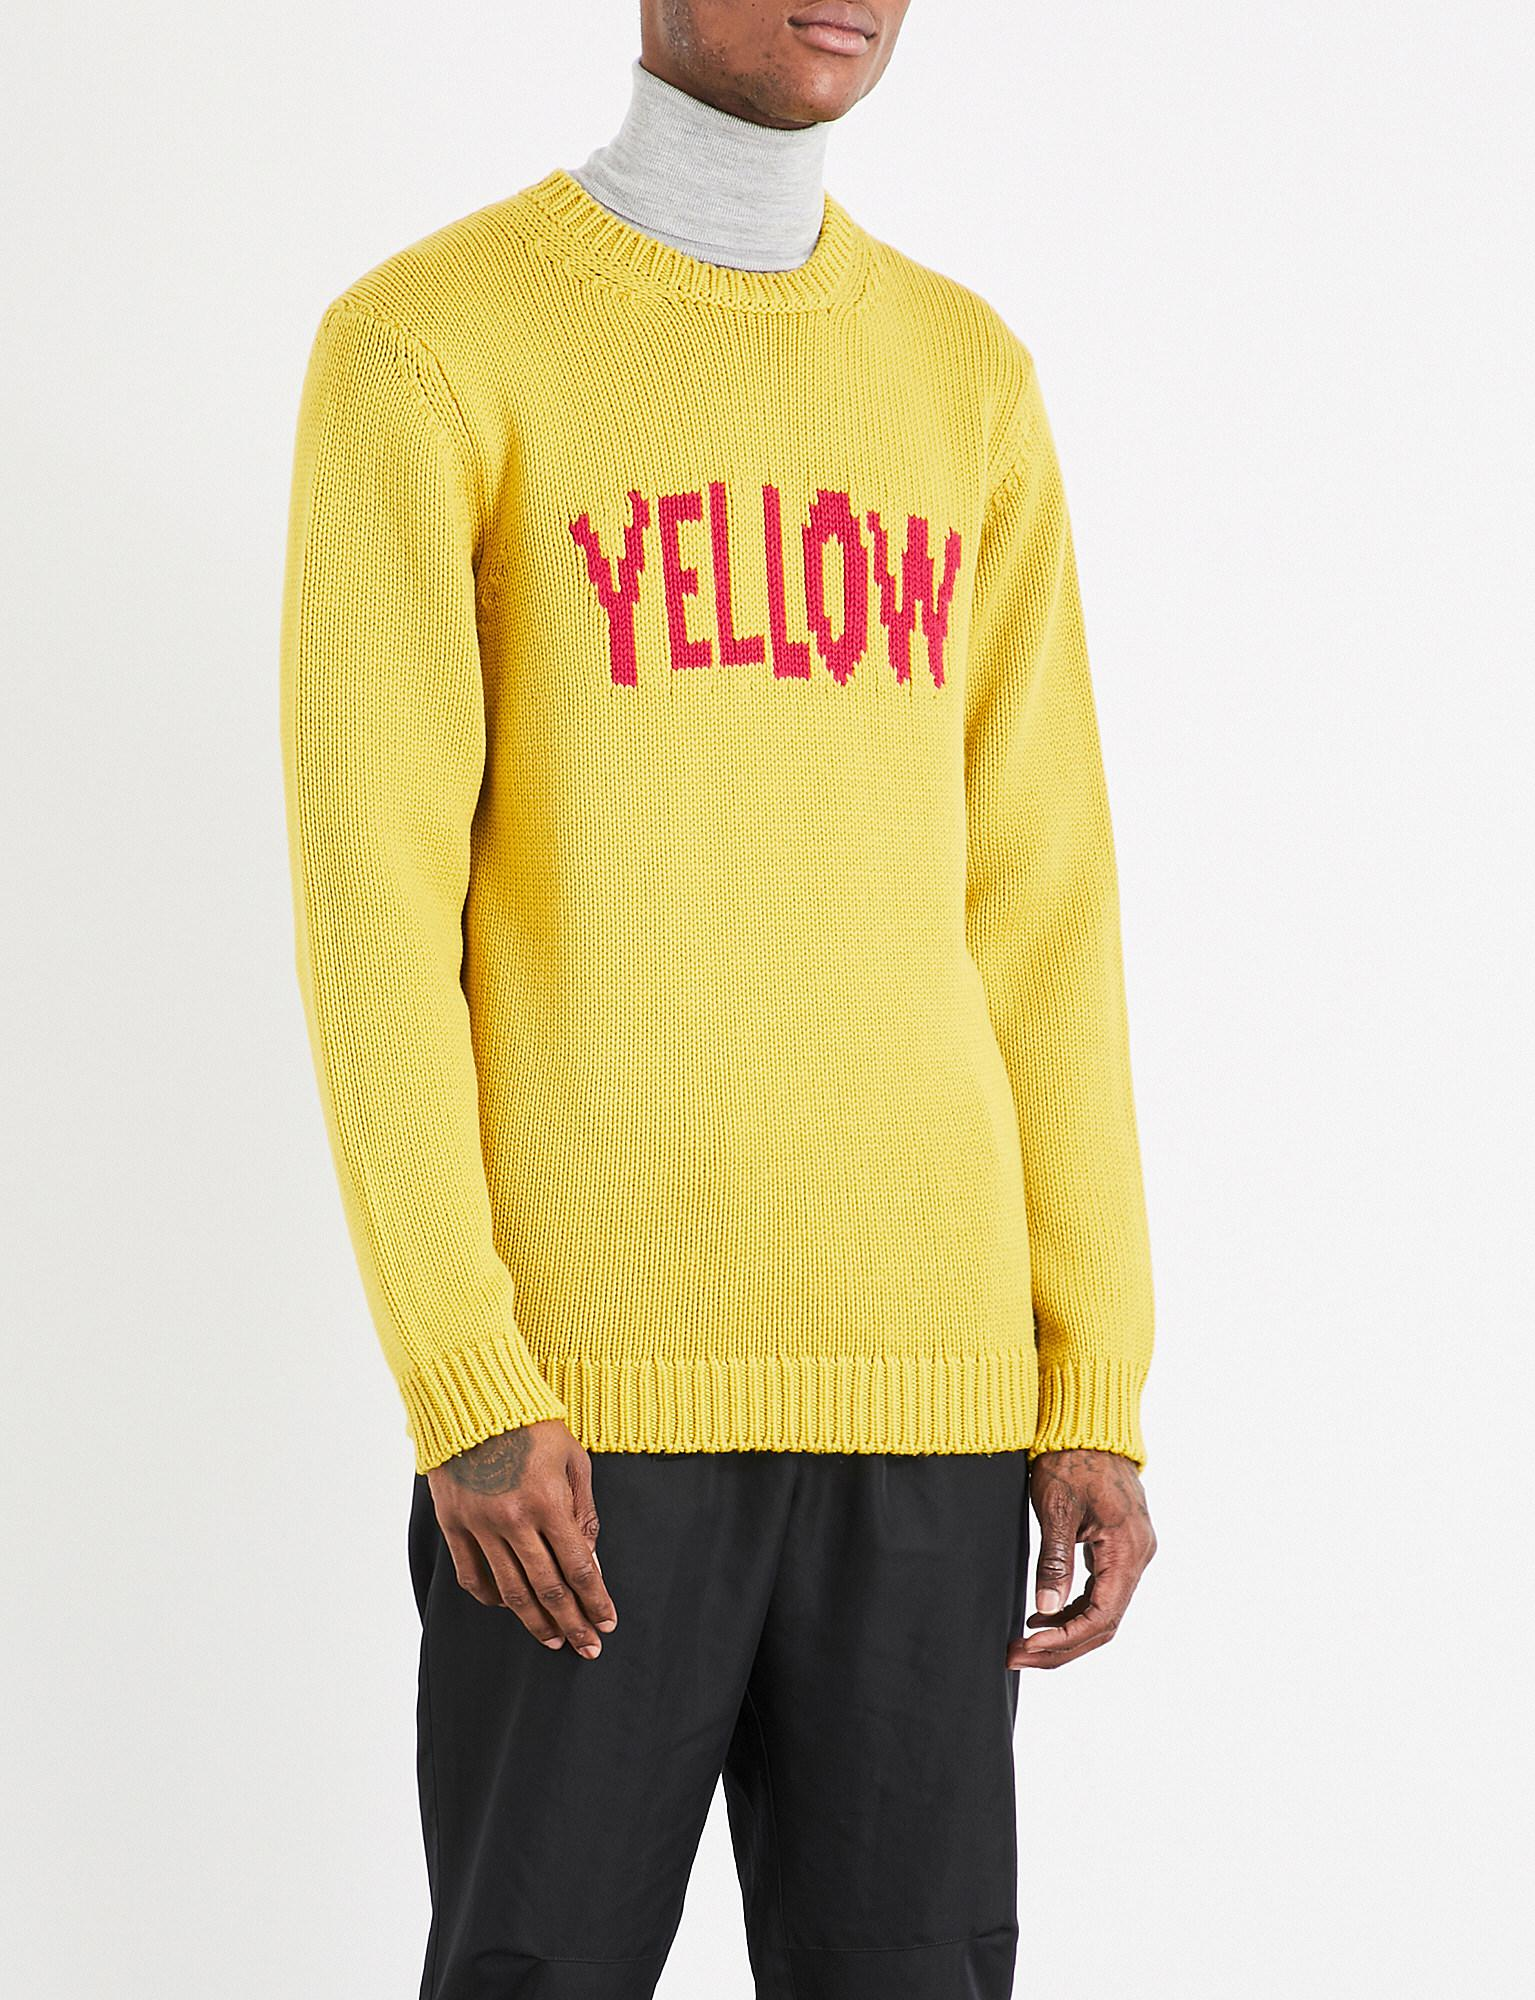 TWO TONE FFAMILY WOOL INTARSIA SWEATER Best Supplier Clearance Low Price Fee Shipping Release Dates Sale Online Perfect Cheap Online rMXZo